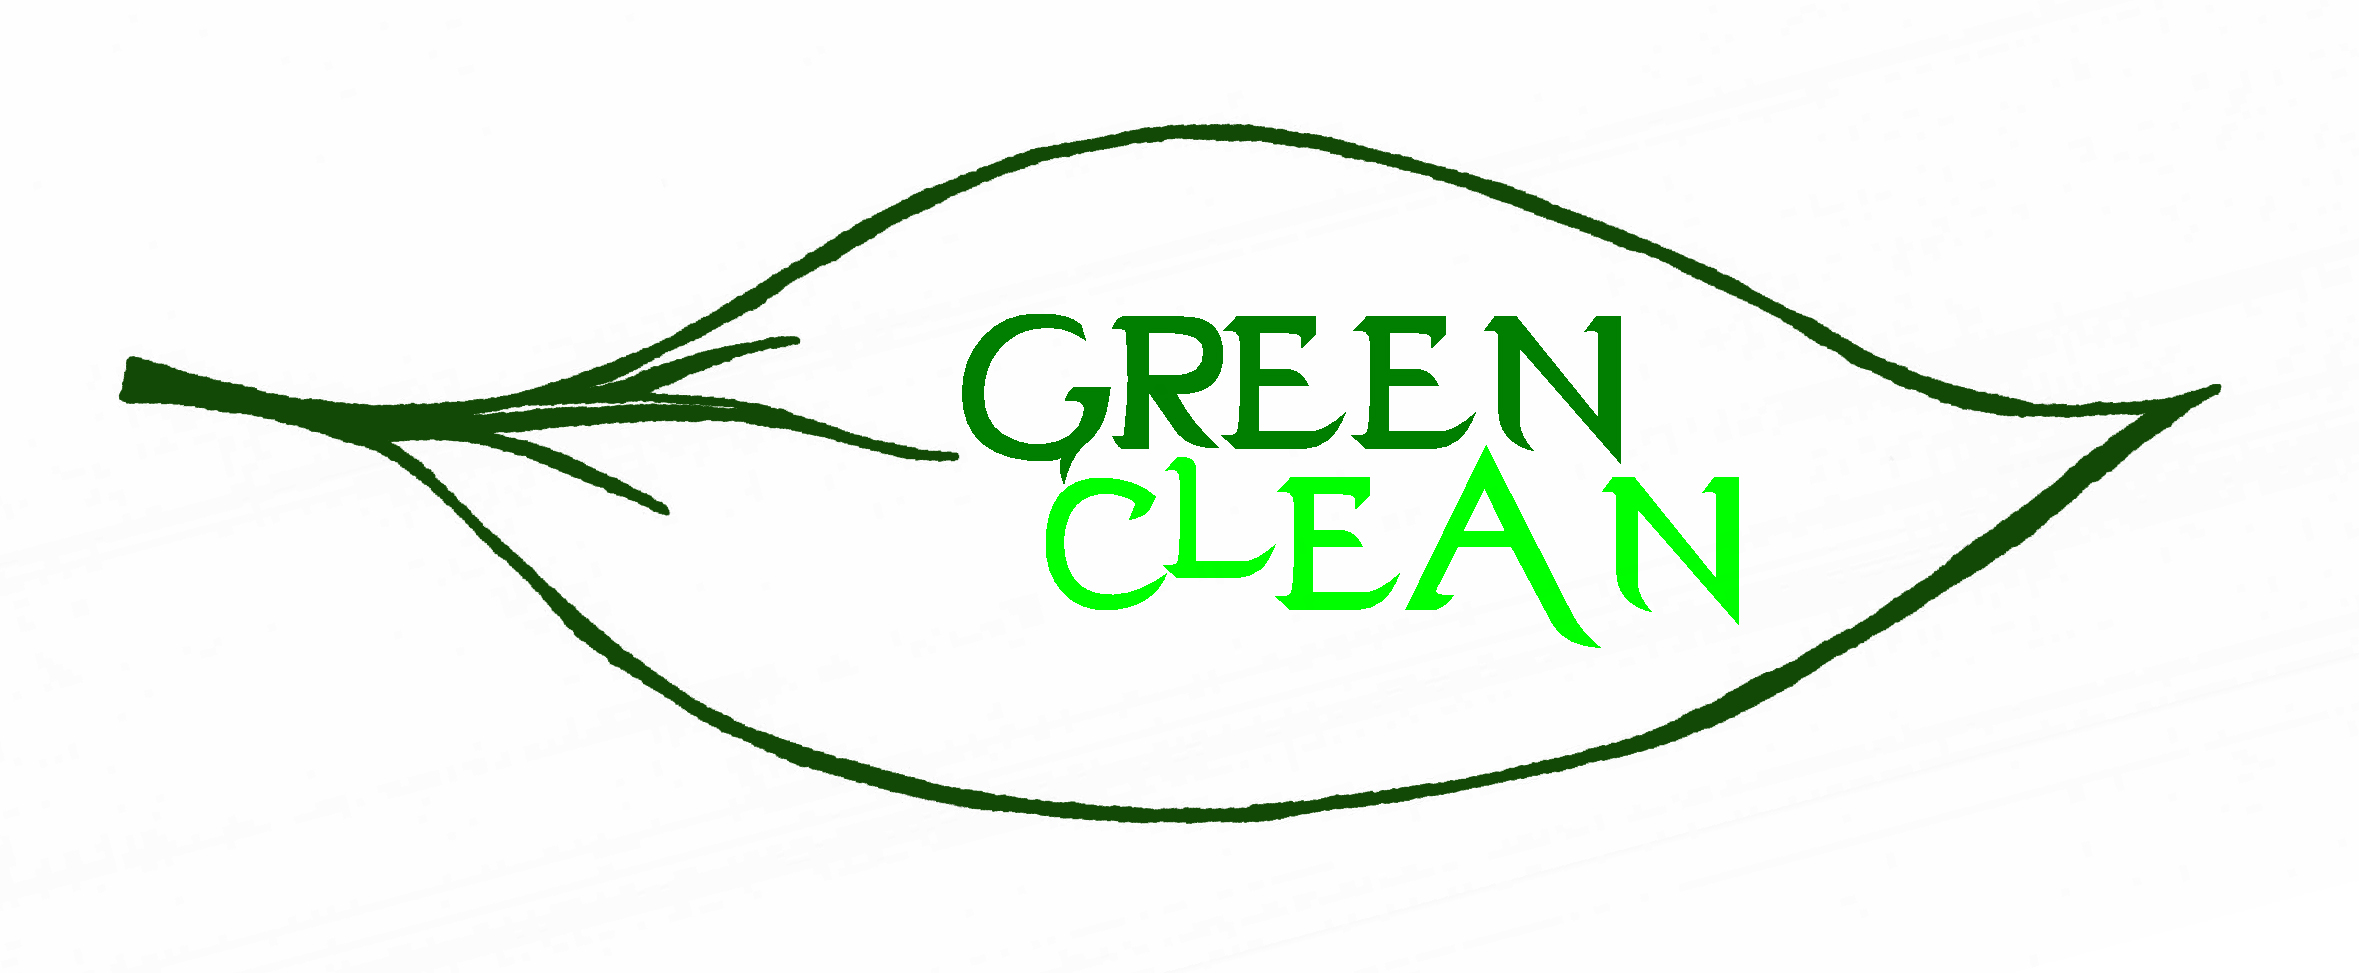 Why Choose Green Commercial Cleaning Products?